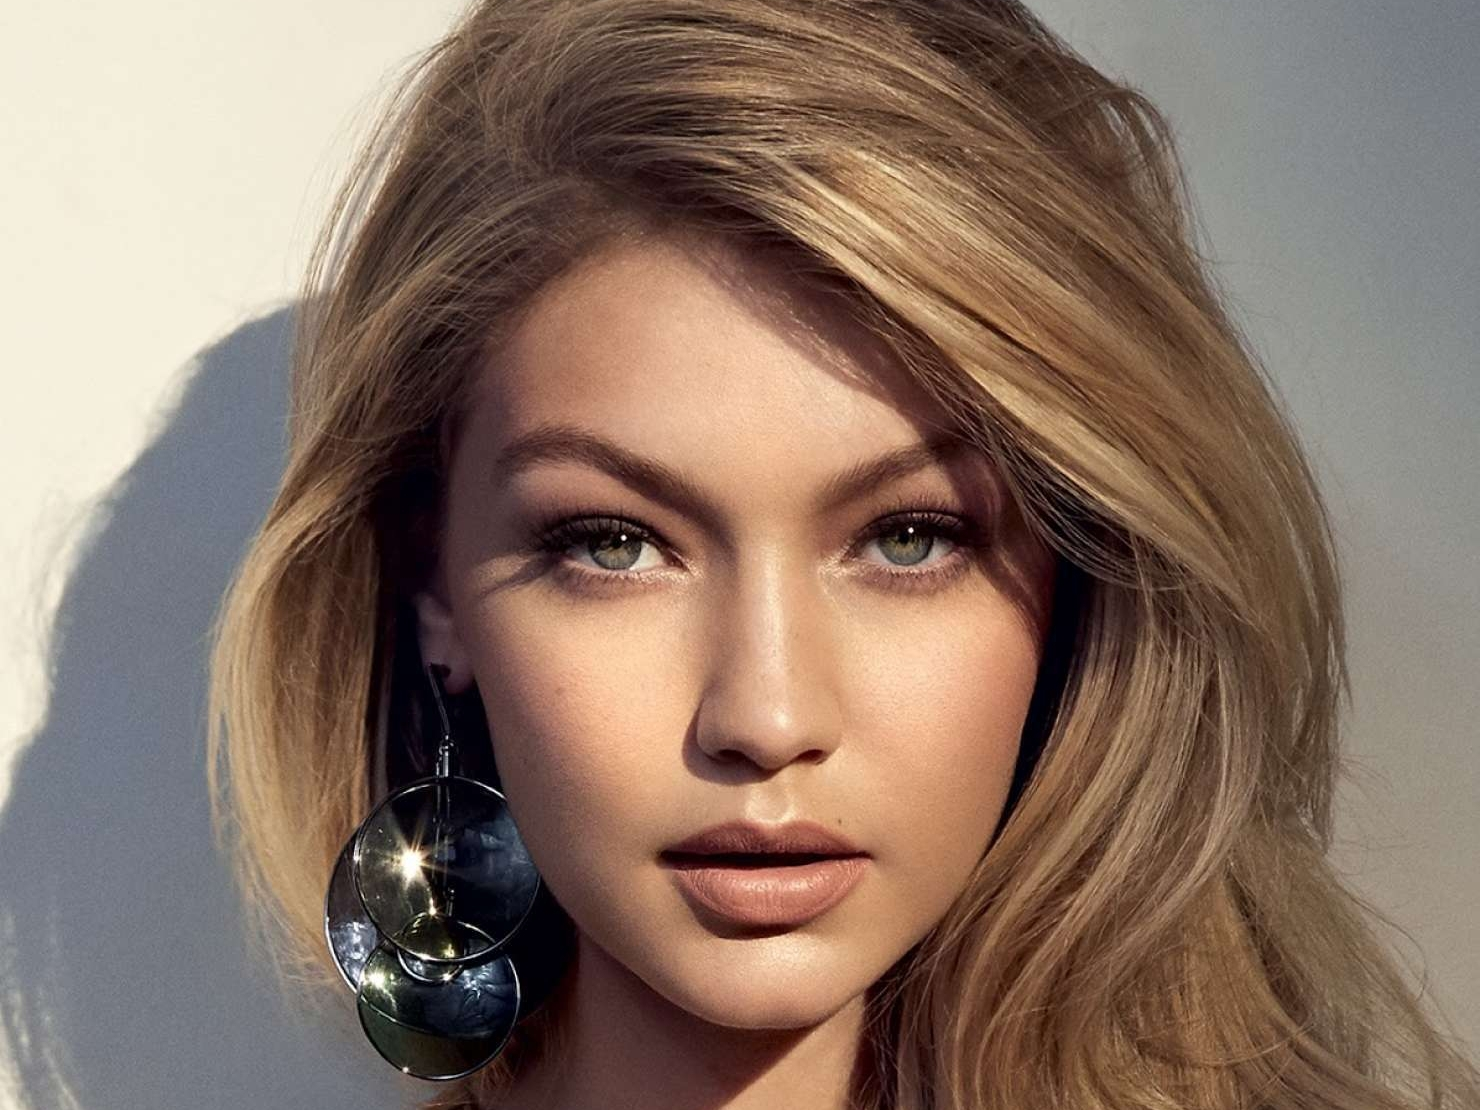 10 New Gigi Hadid Wallpaper Hd FULL HD 1080p For PC Desktop